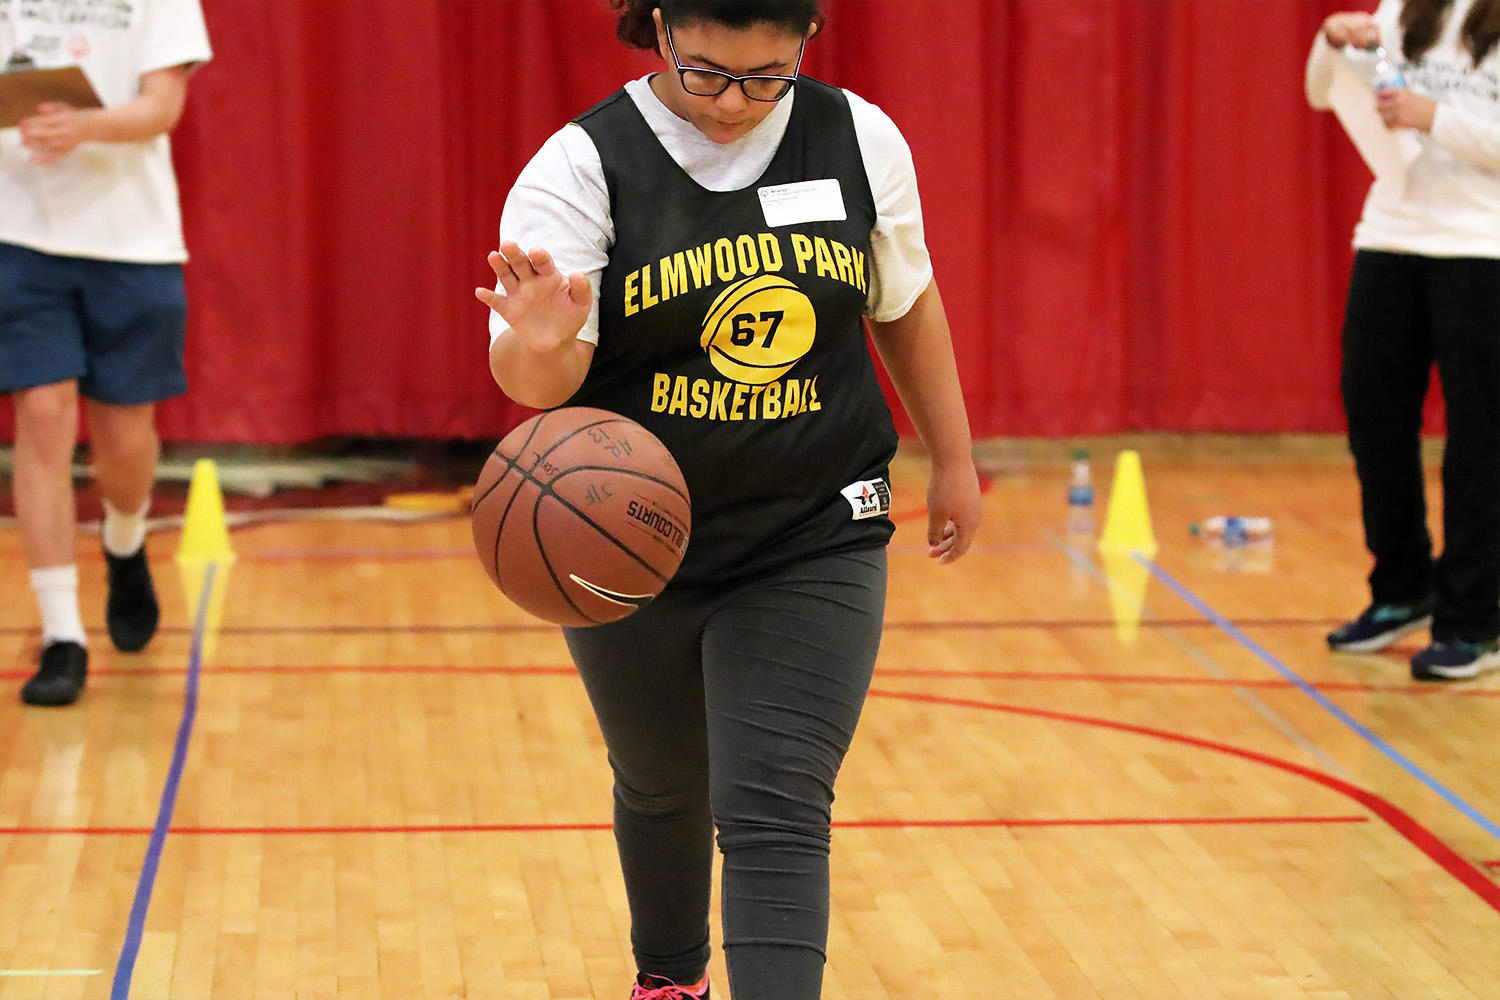 Ari from EPHS competes in the Special Olympics Illinois basketball skills event.